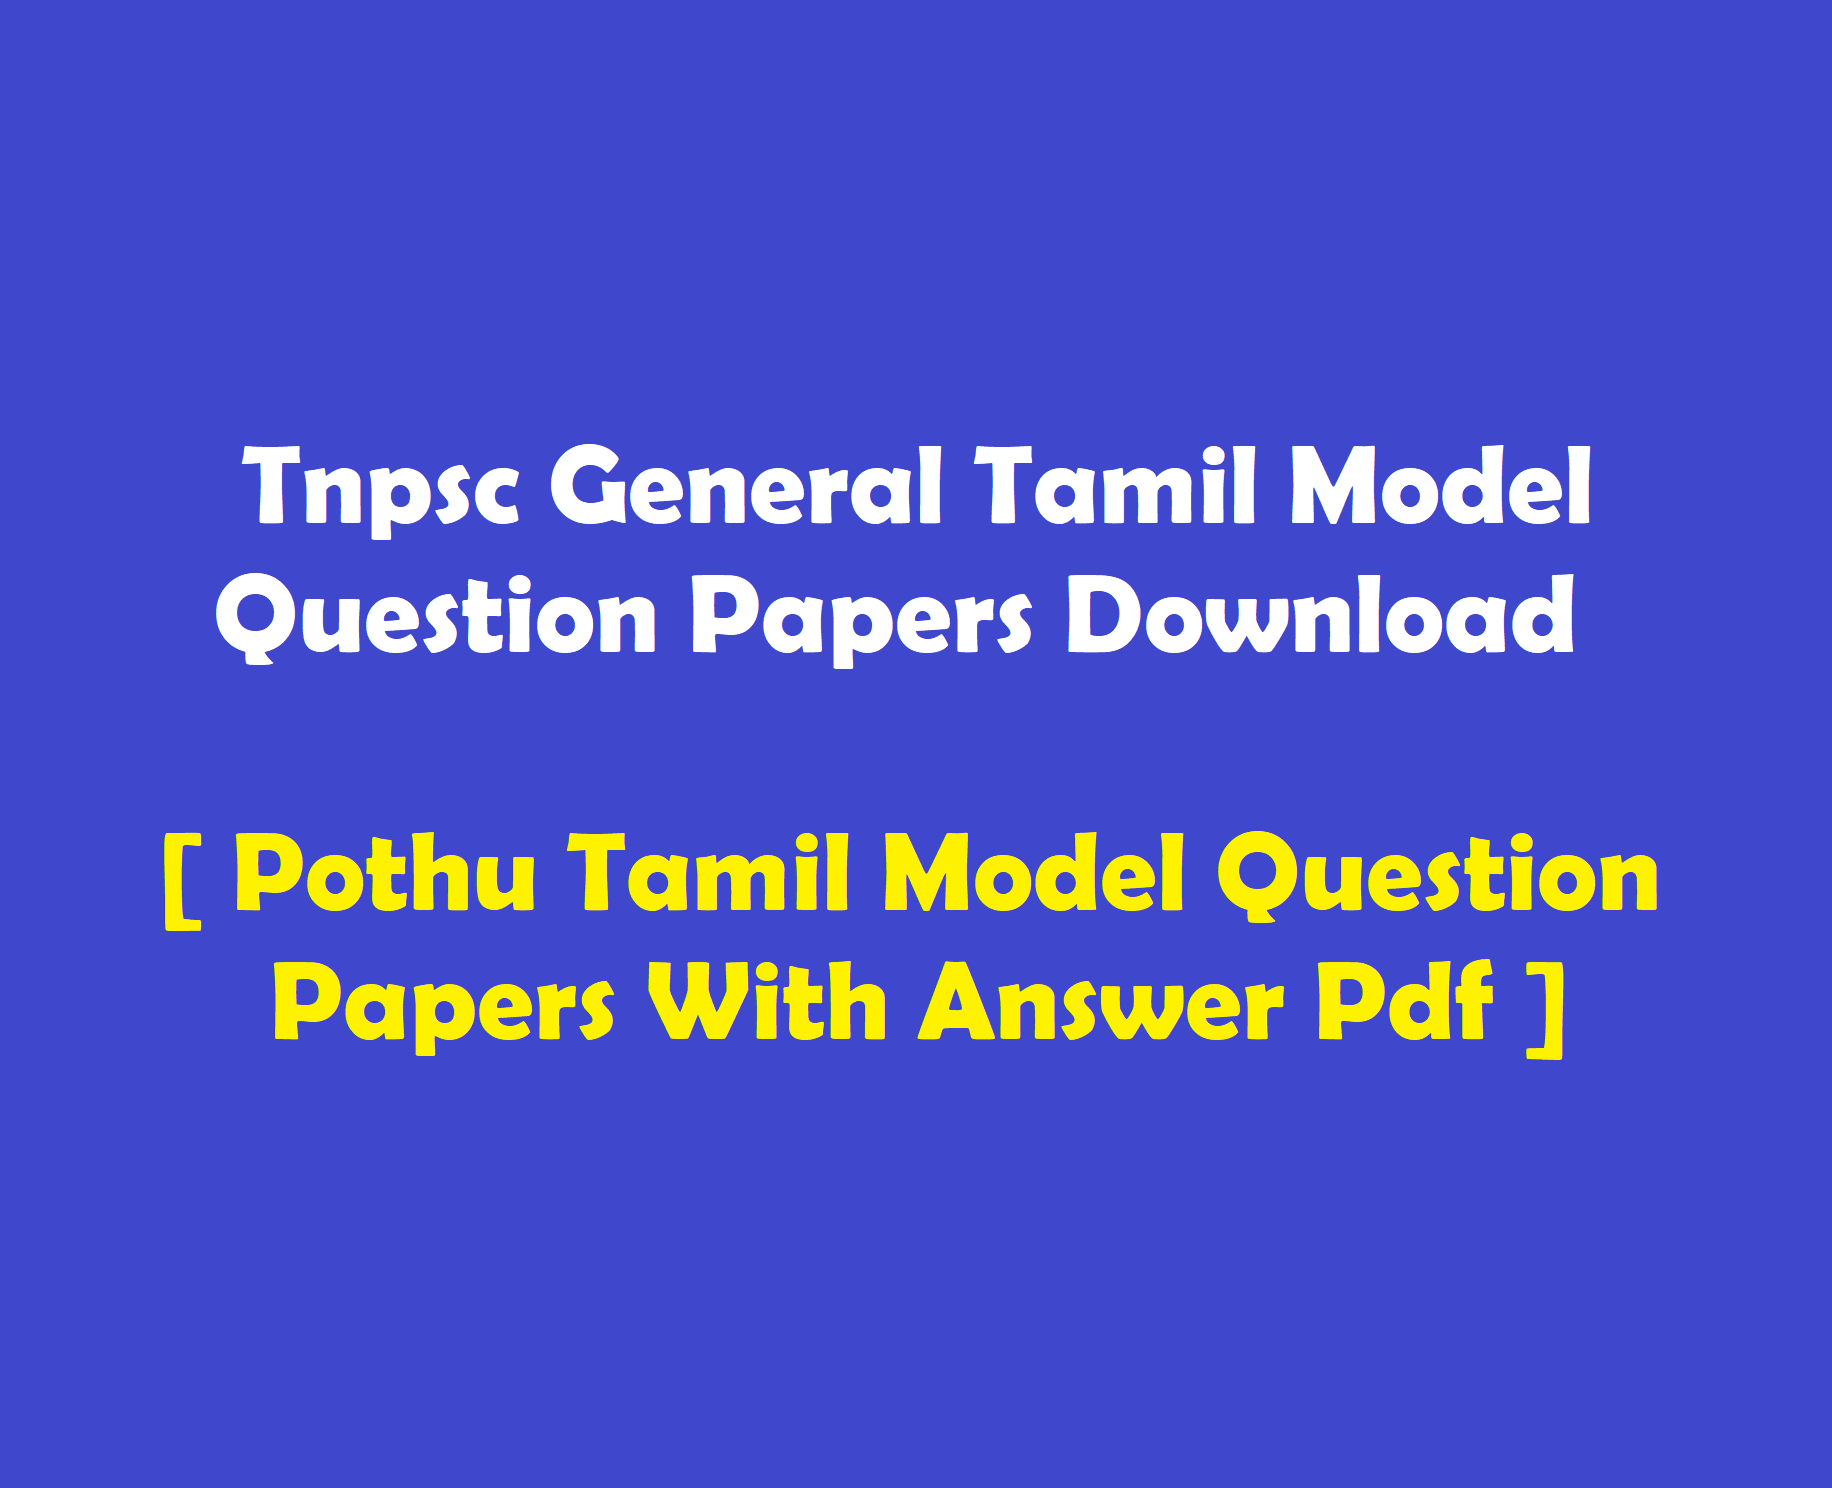 General Tamil Model Question Papers For Tnpsc Study